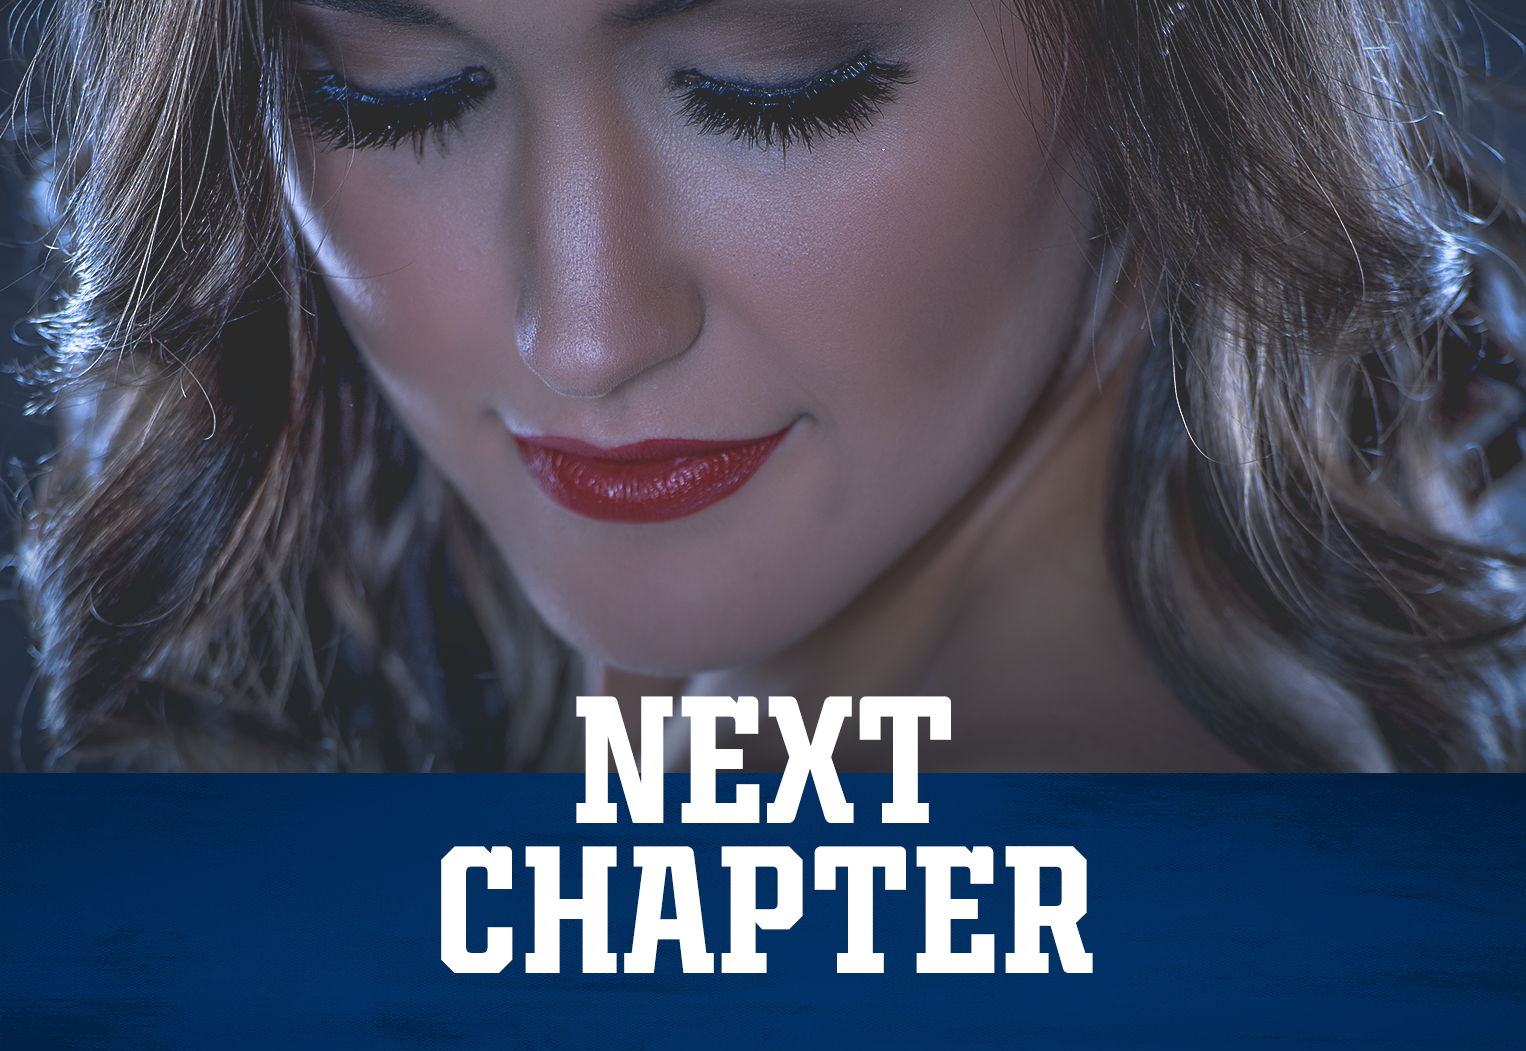 Indianapolis Colts Cheer Next Chapter